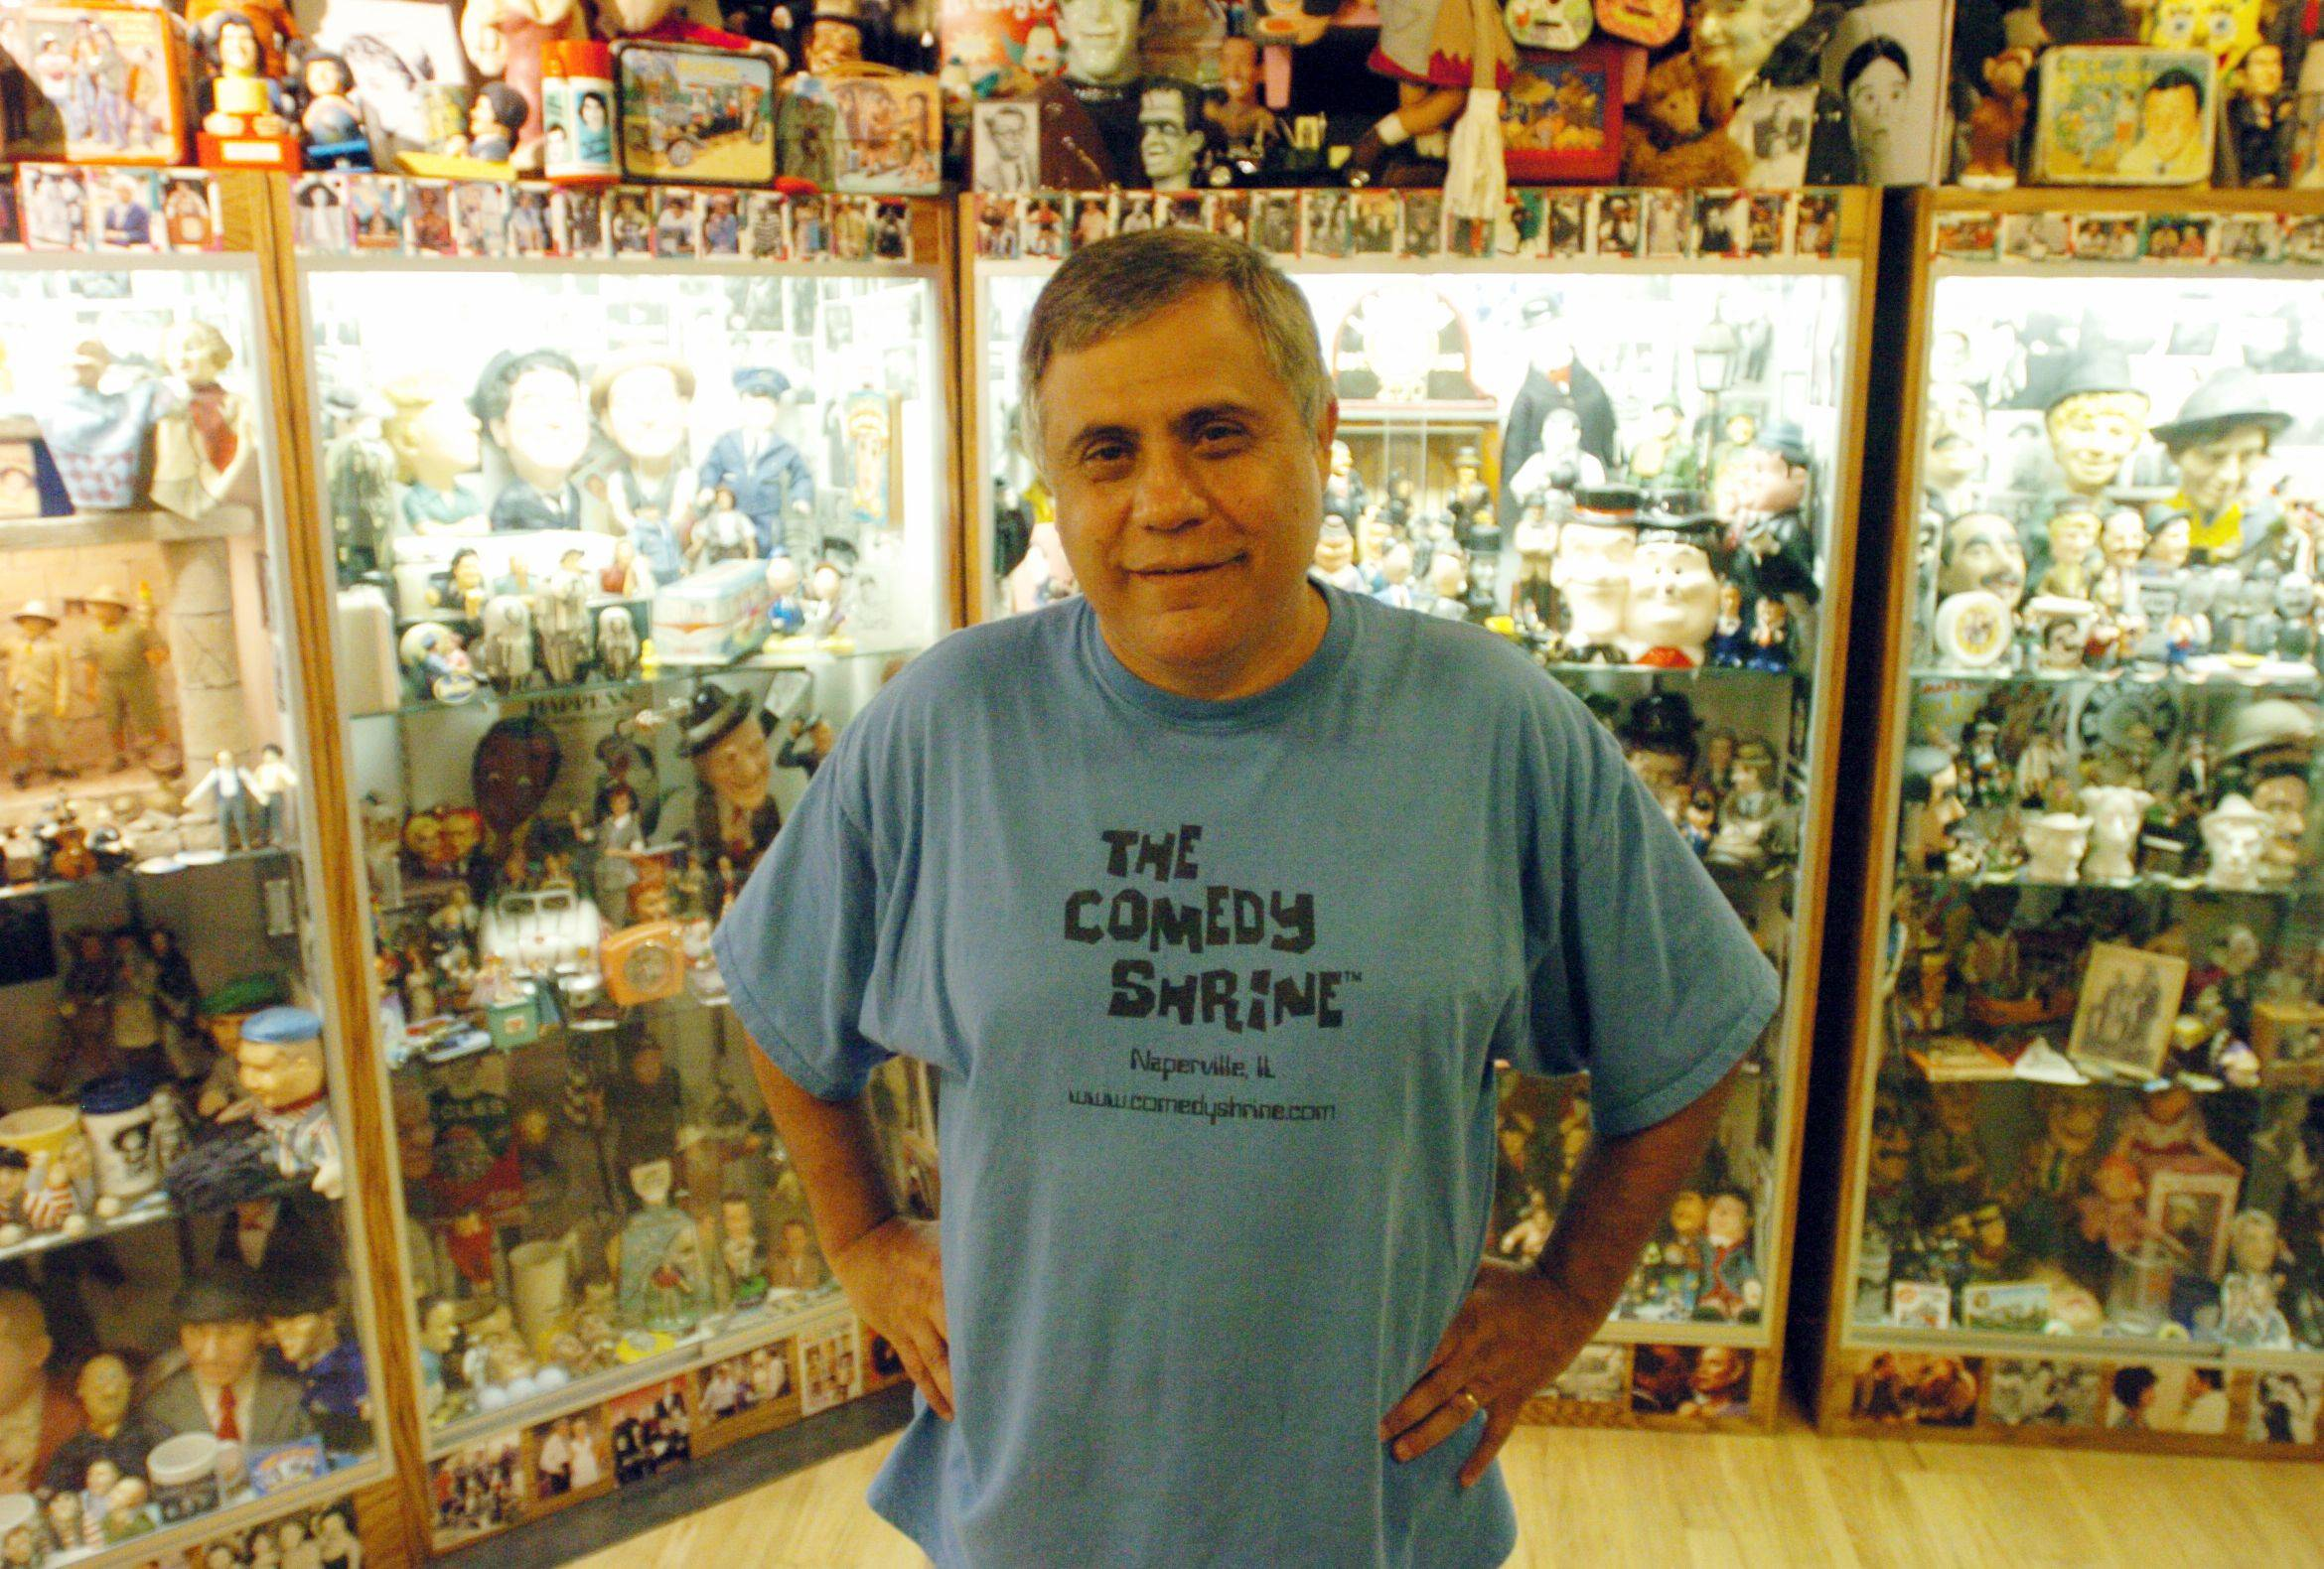 David Sinker is the founder of the Comedy Shrine, which is moving from Naperville to Aurora.